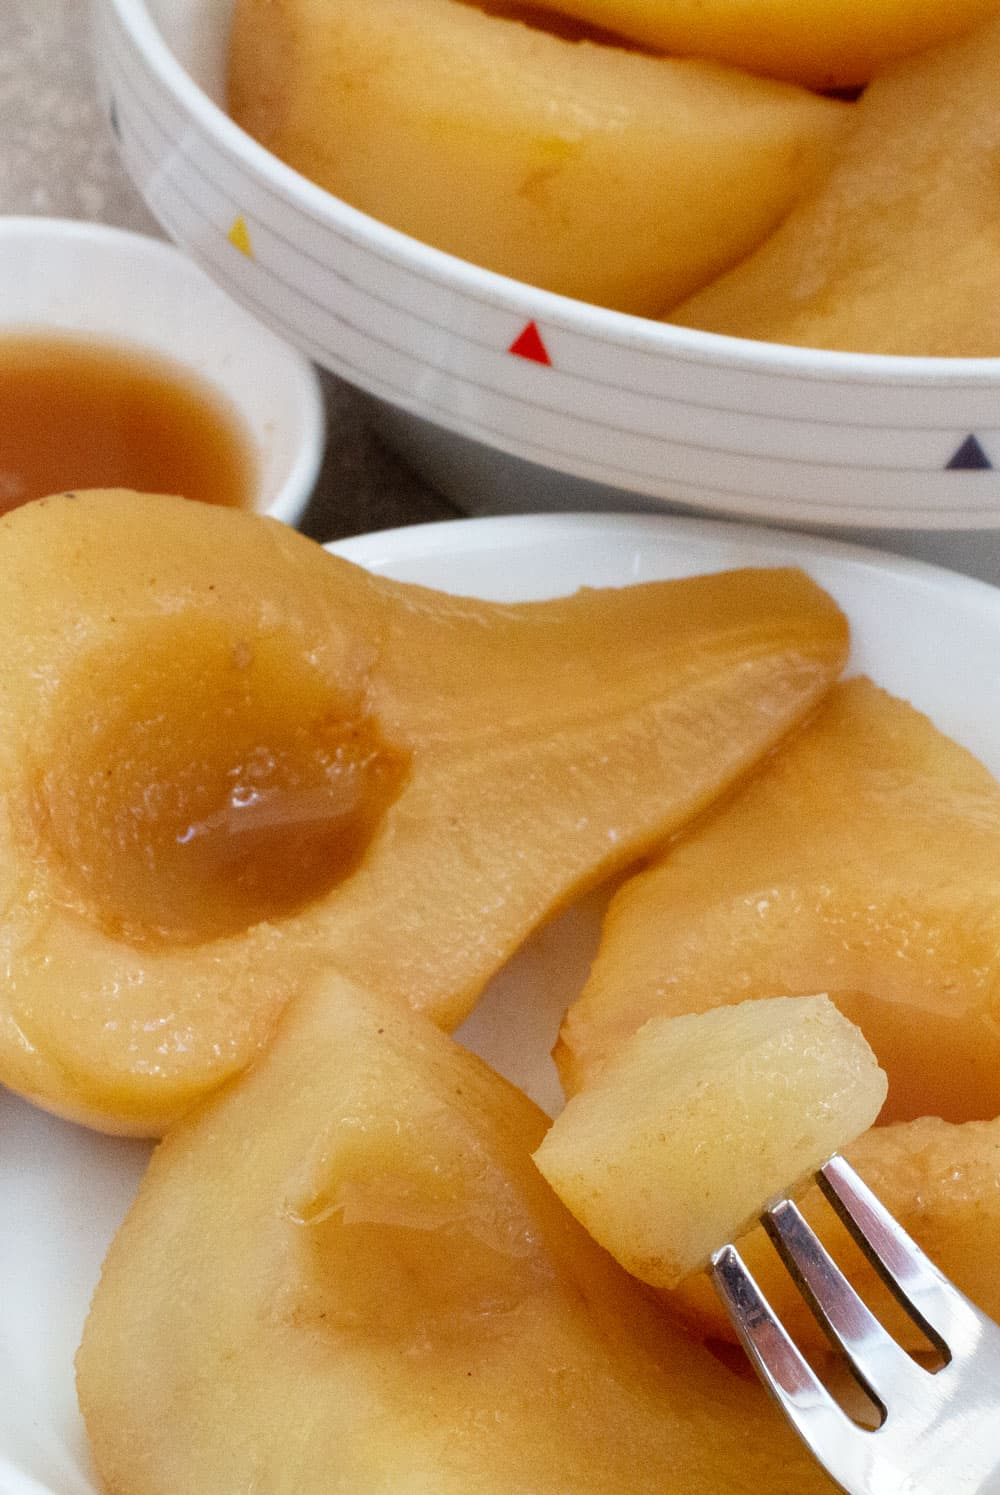 A piece of a Cider Masala Poached Pear above a plate of pears